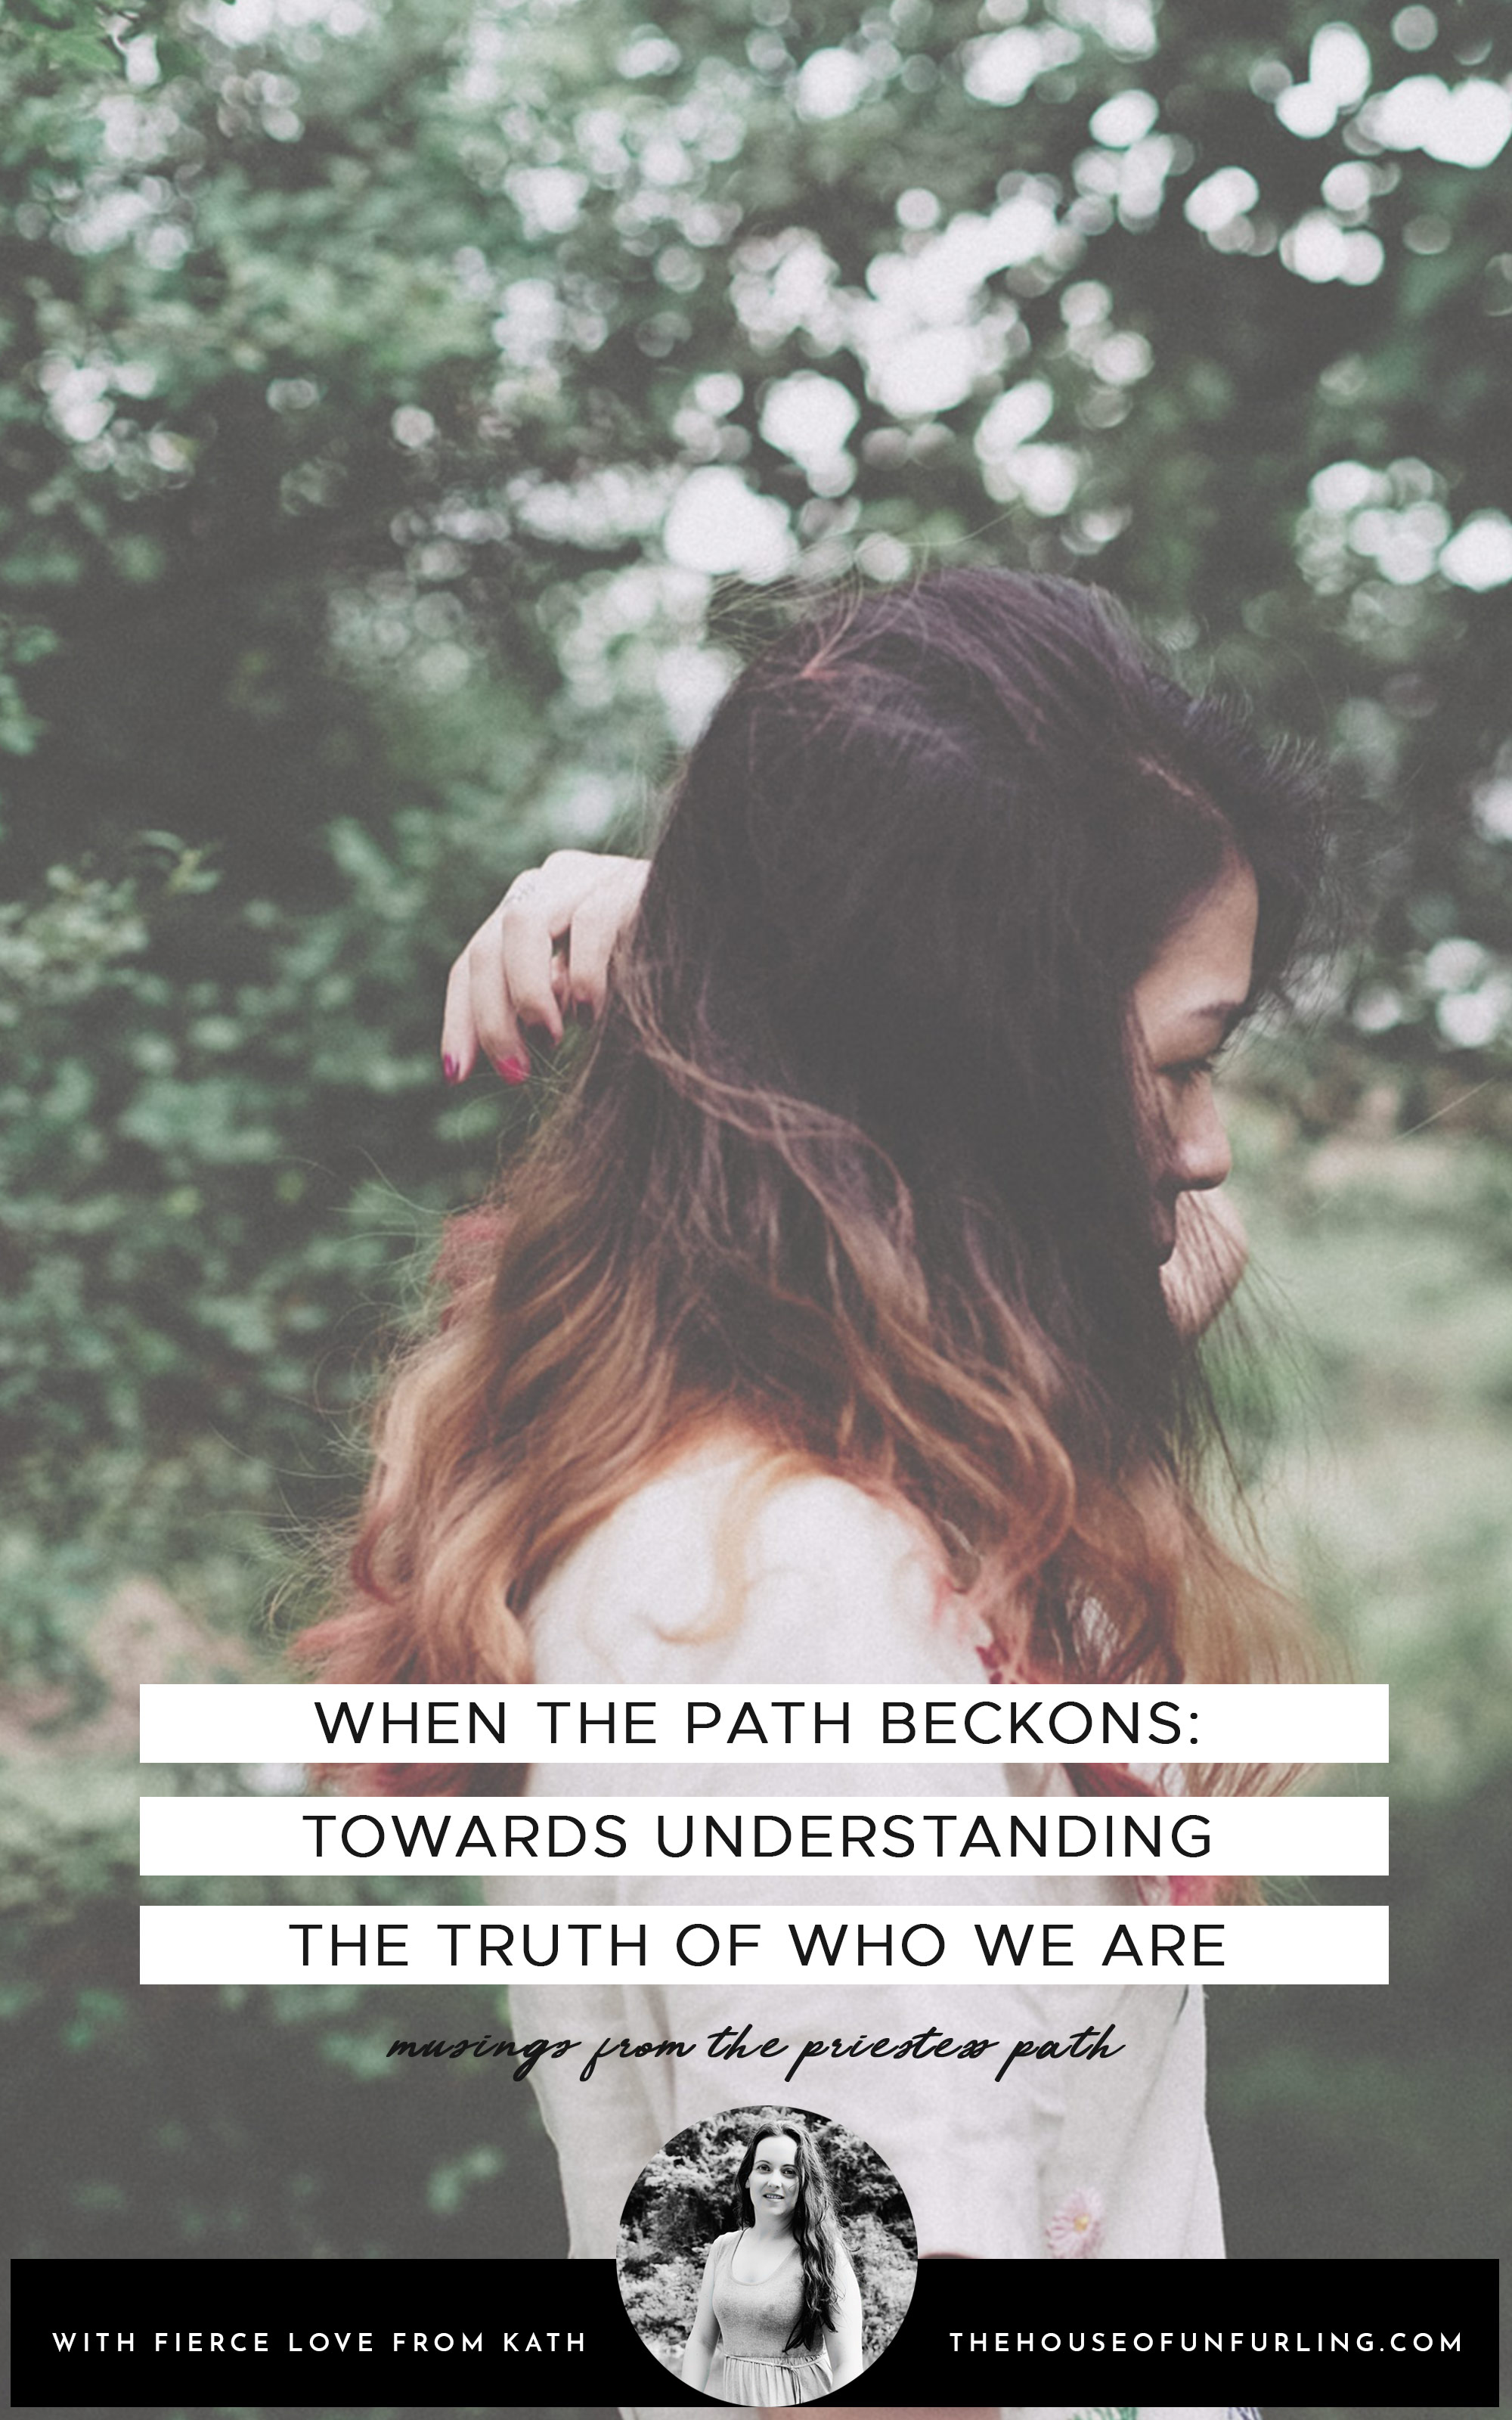 PIN IT - when the path beckons: towards understanding the truth of who we are. with love, Kath